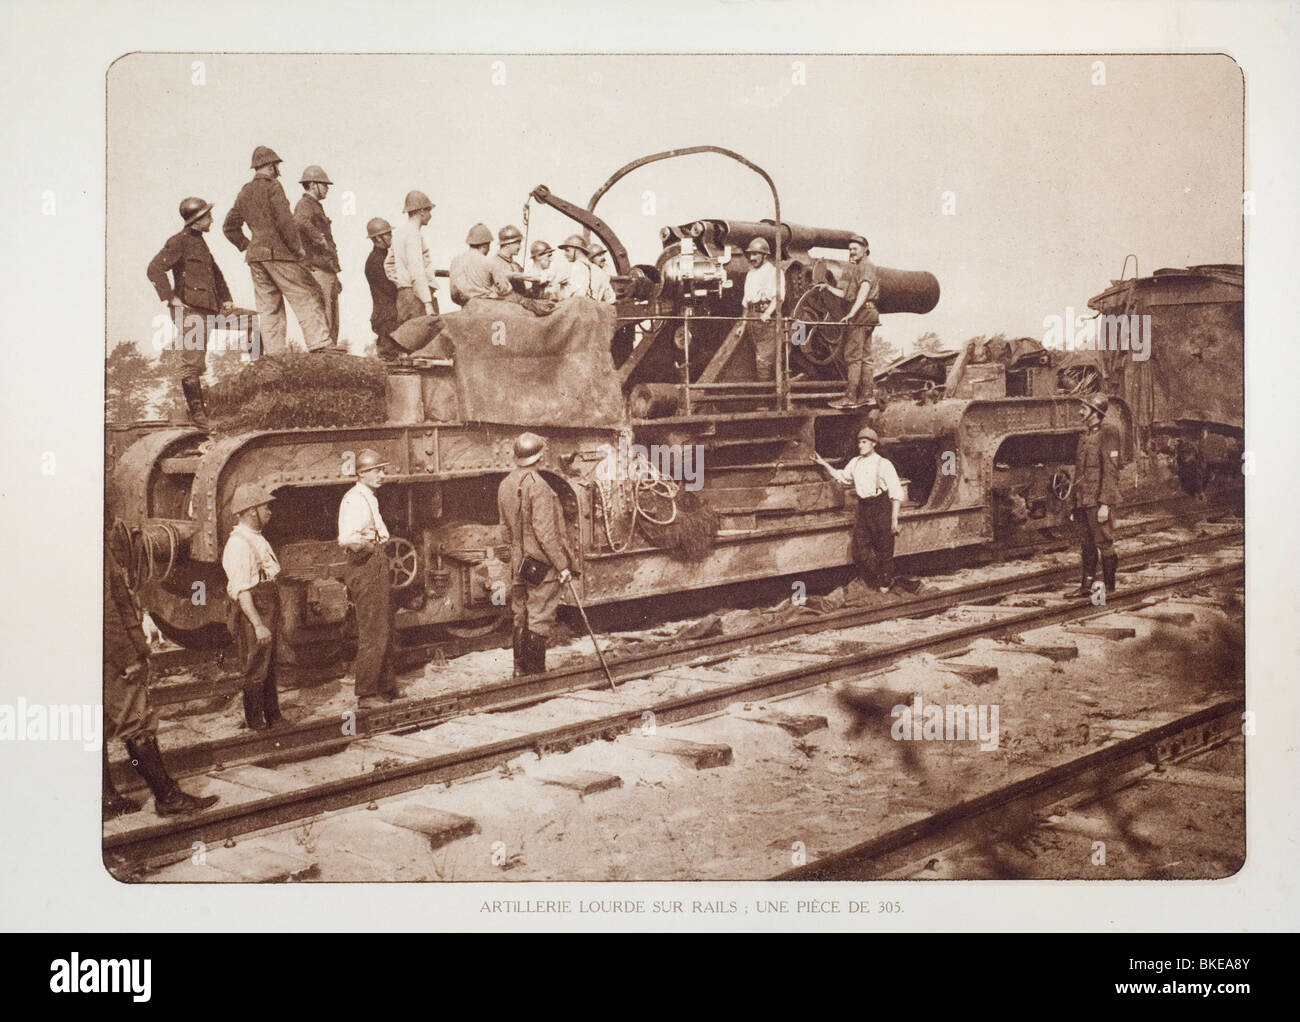 Belgian WWI artillery soldiers with railway gun / howitzer on rails in West Flanders during the First World War - Stock Image